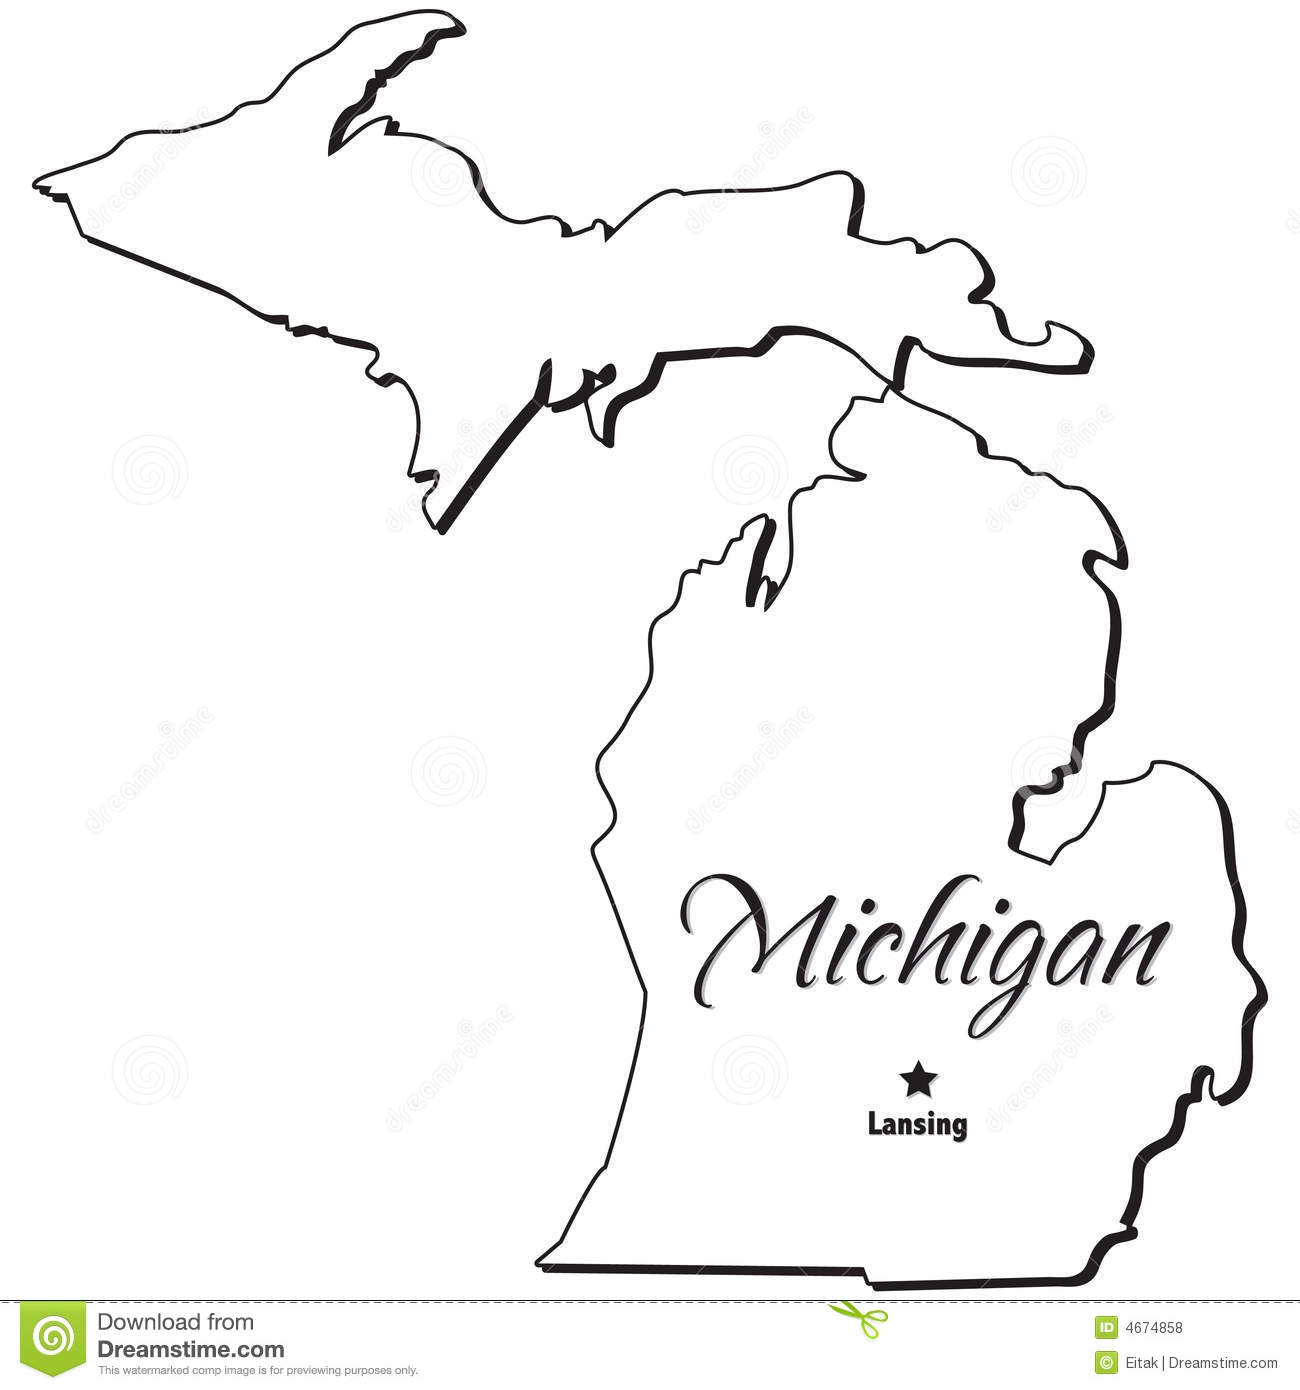 State of michigan clipart vector freeuse stock State of Michigan Outline | Clipart Panda - Free Clipart Images vector freeuse stock